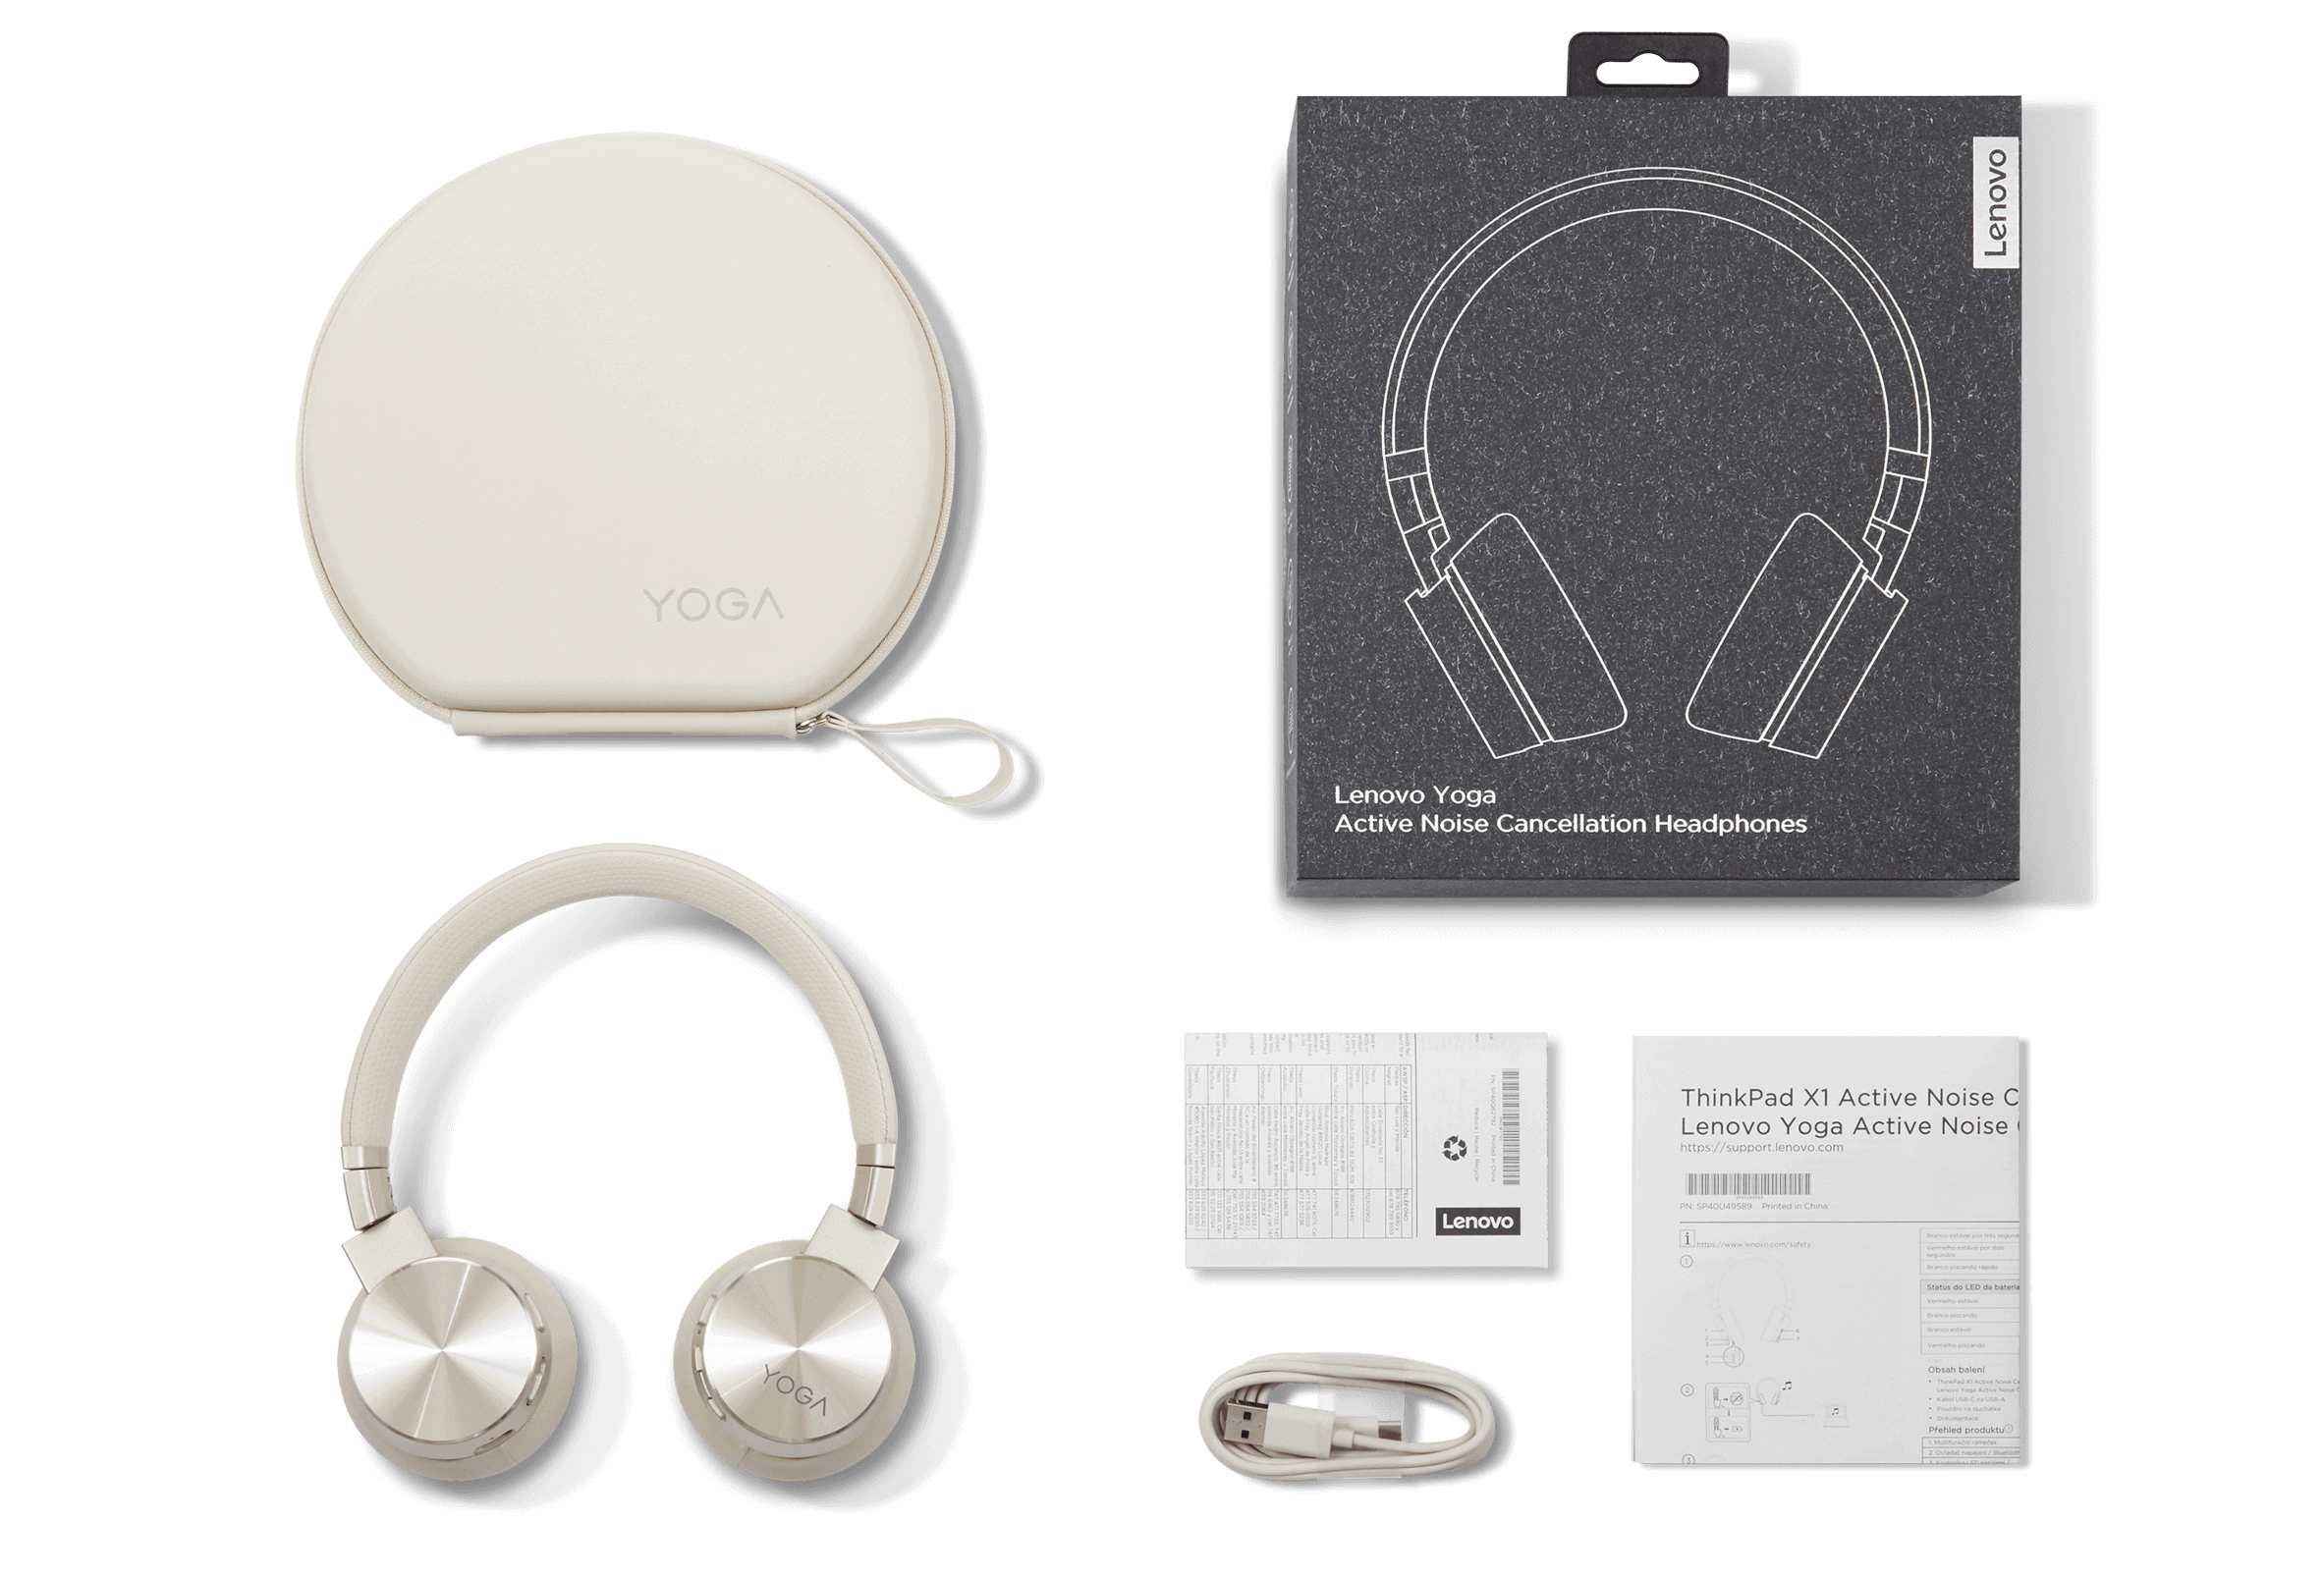 Lenovo Yoga ANC Headphones What's in the Box View